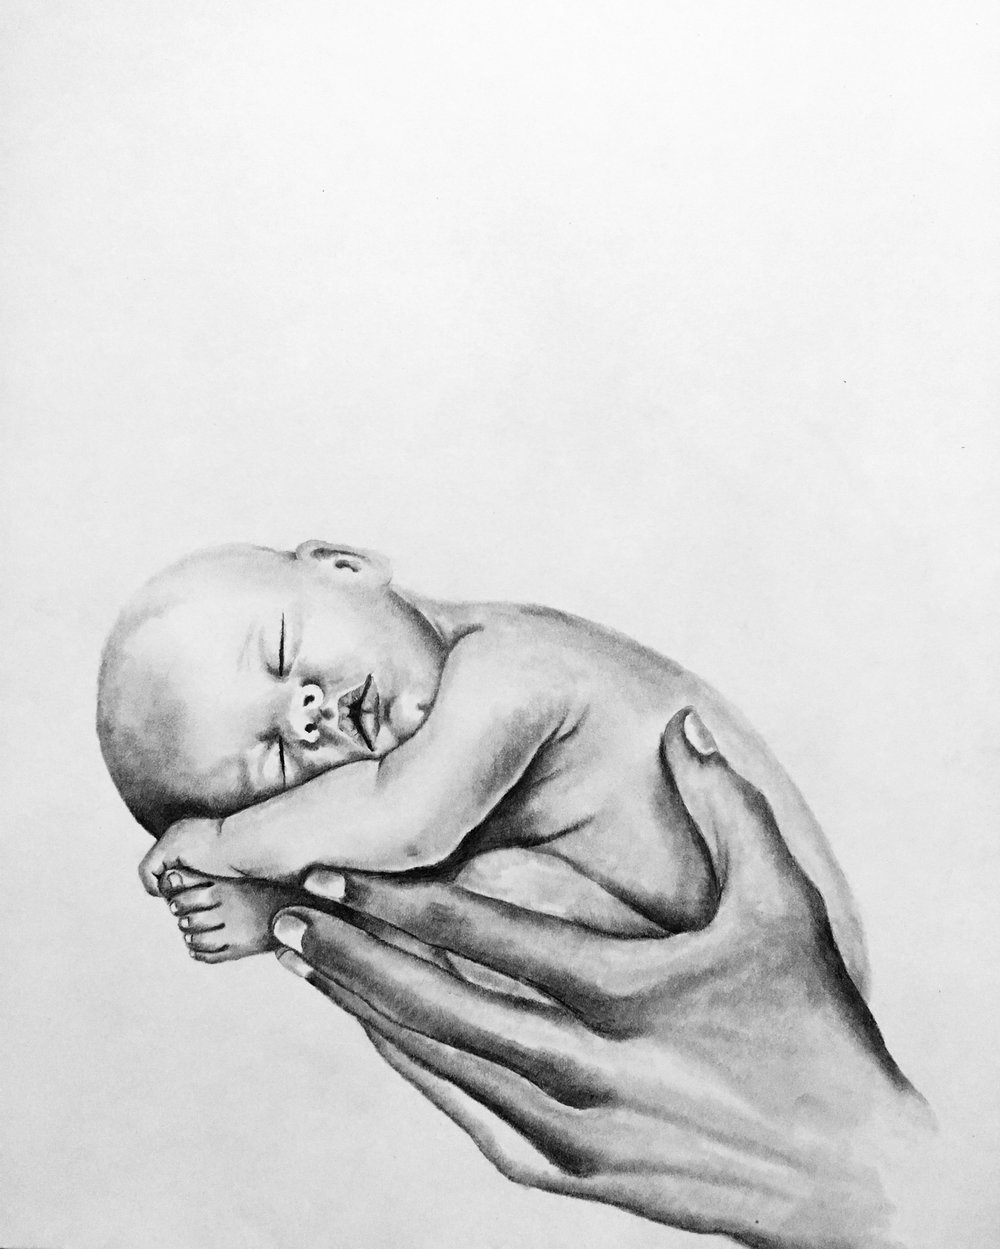 Newborn, 2018   #2 pencil & charcoal on paper